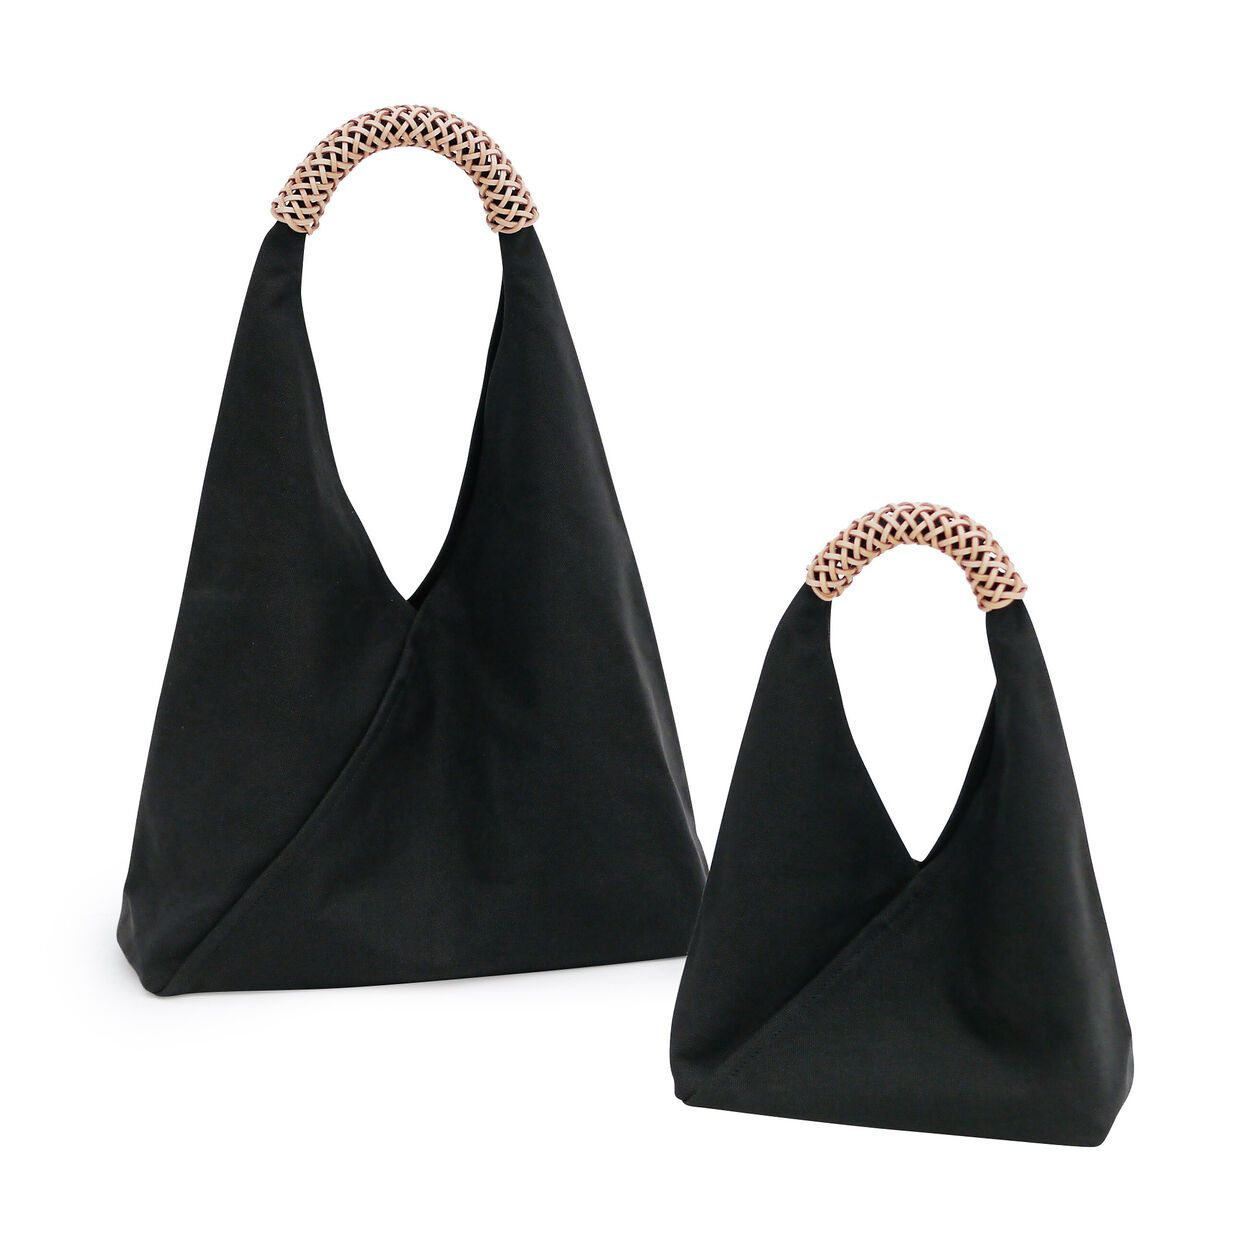 Woven Triangle Bag In 2020 Triangle Bag Bags Leather Handle